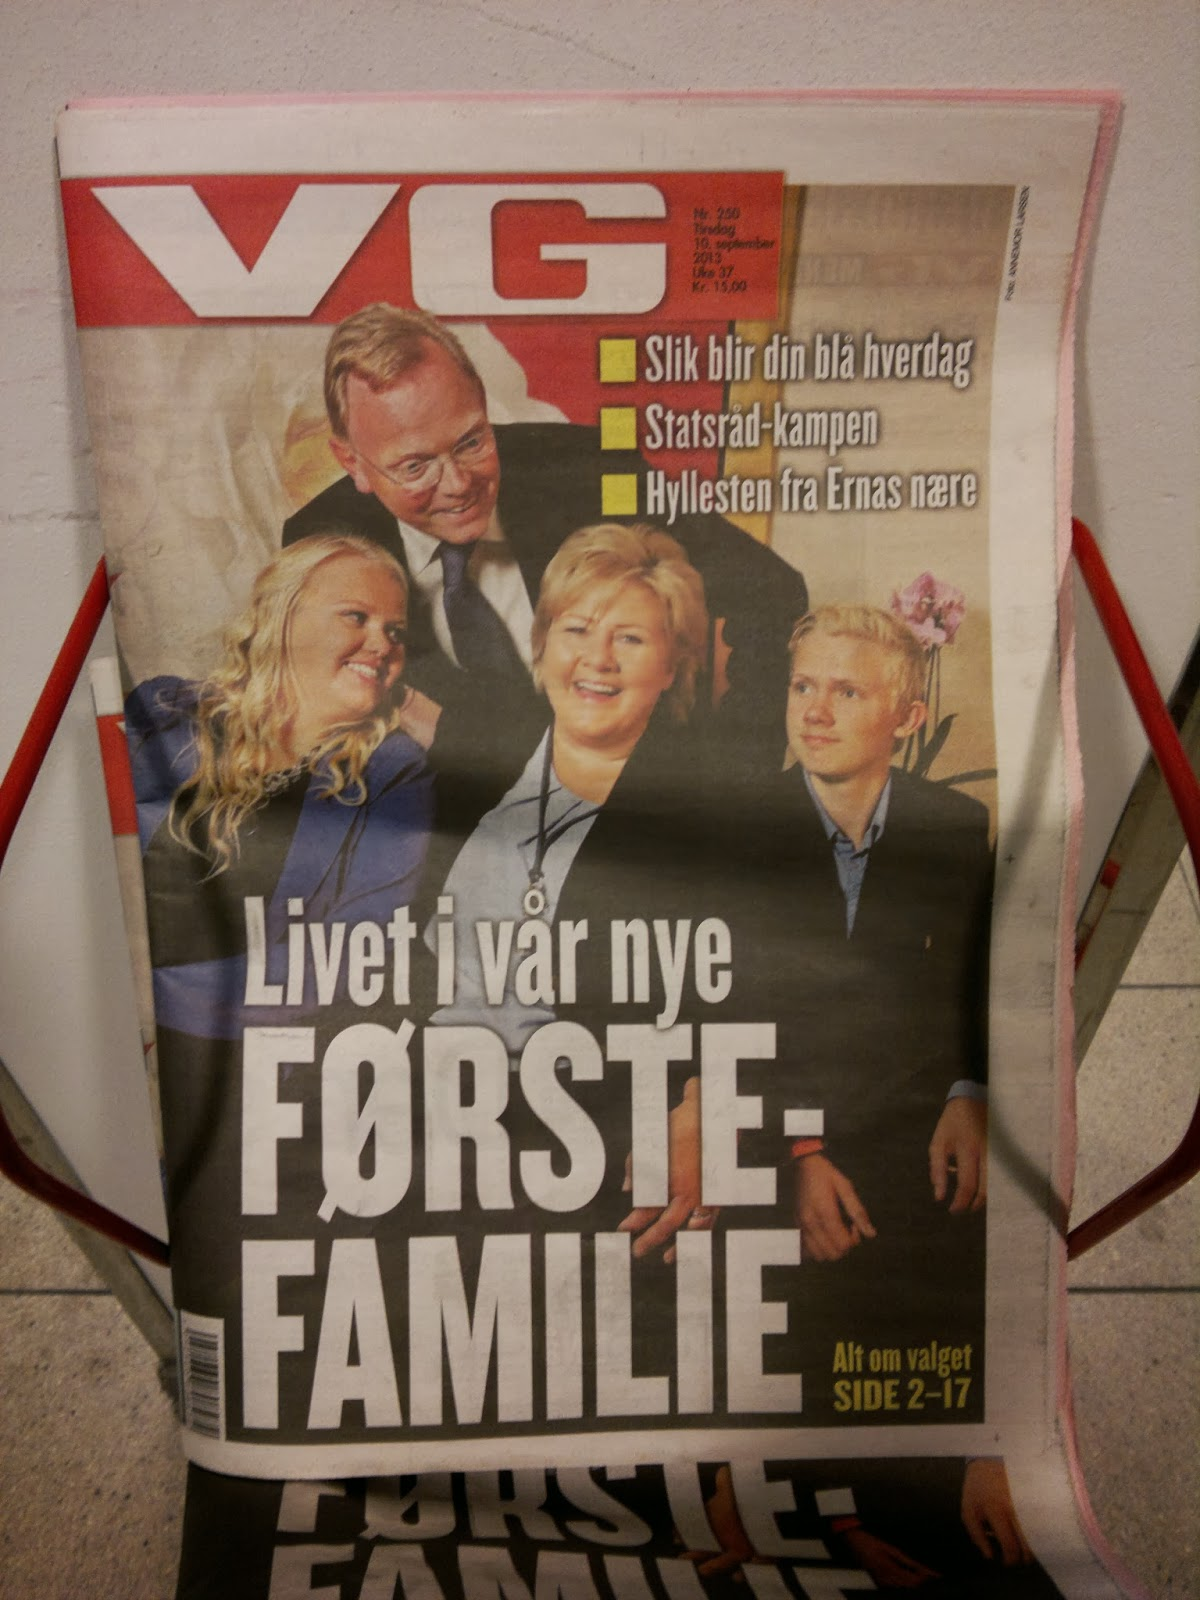 VG's front page after election night 2013